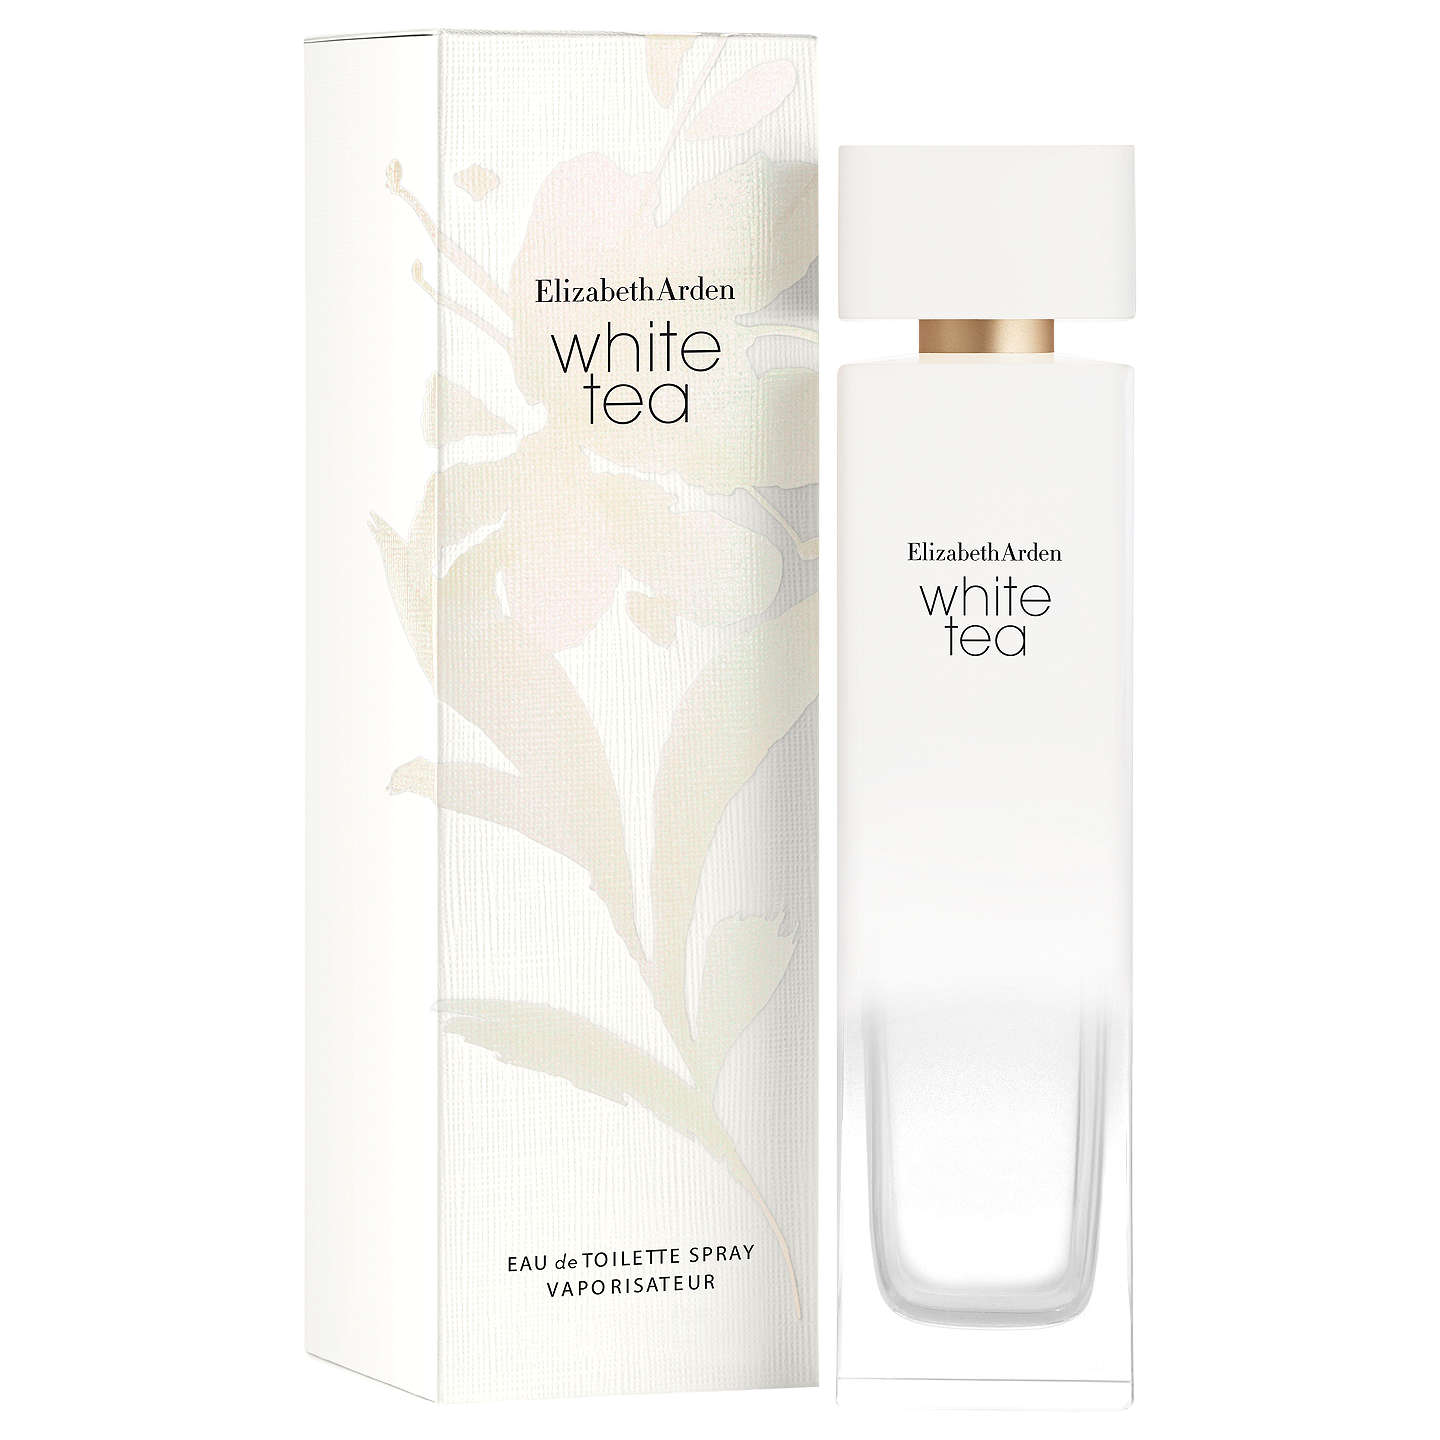 BuyElizabeth Arden White Tea Eau de Toilette, 50ml Online at johnlewis.com